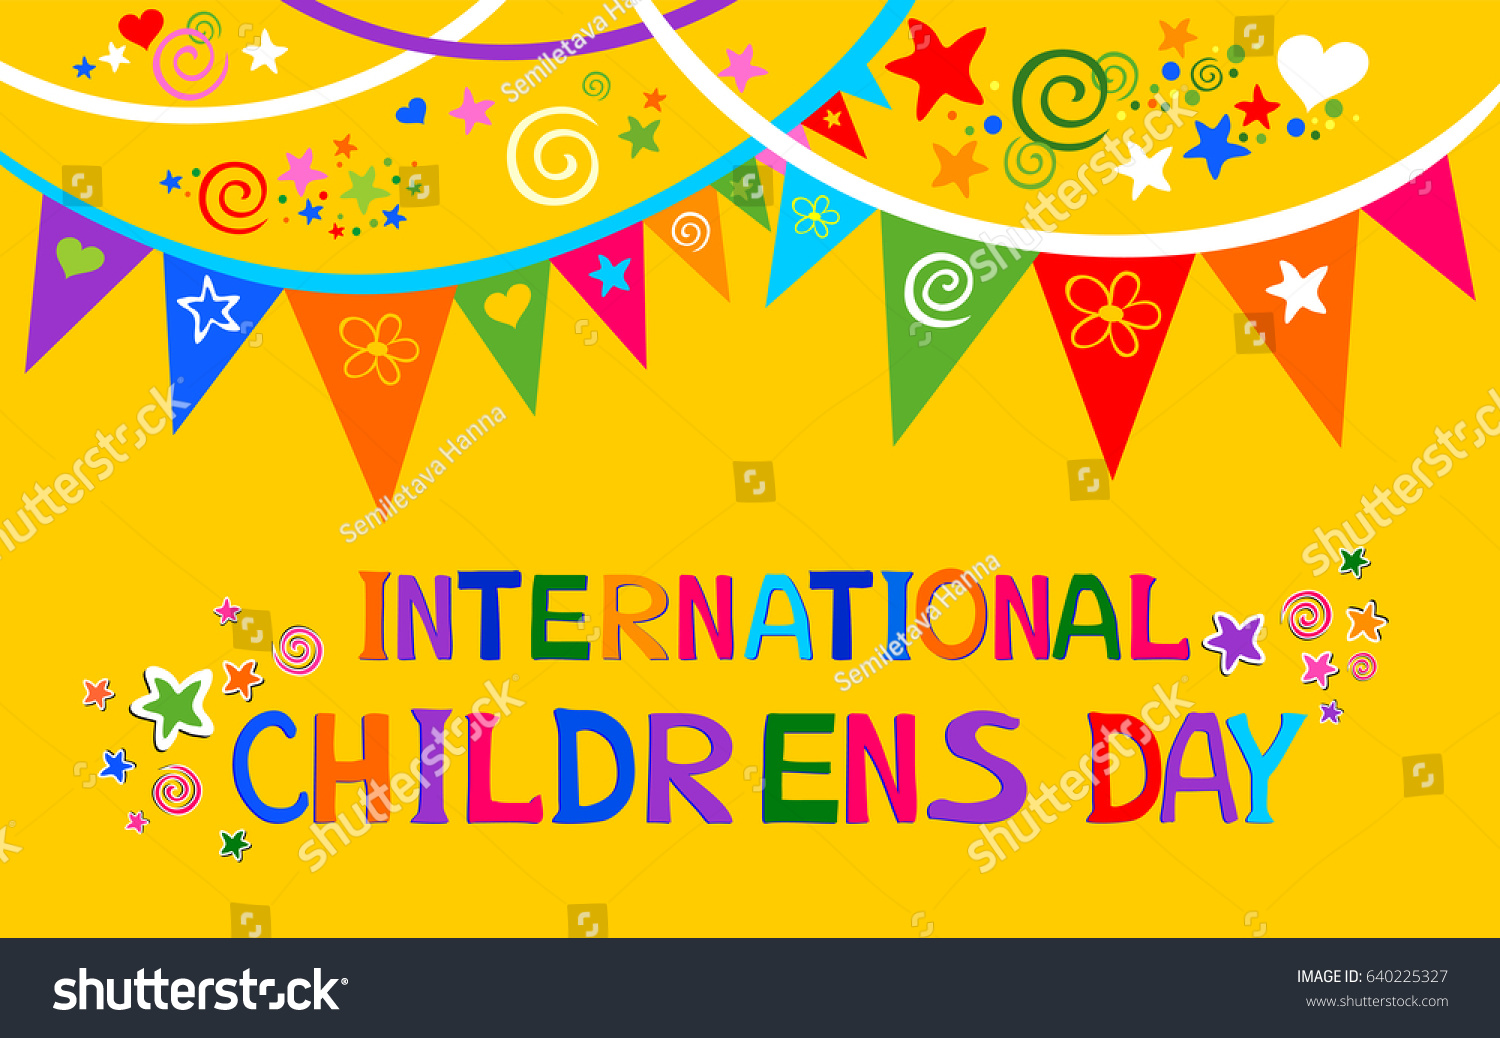 International Childrens Day Happy Children Day Stock Illustration